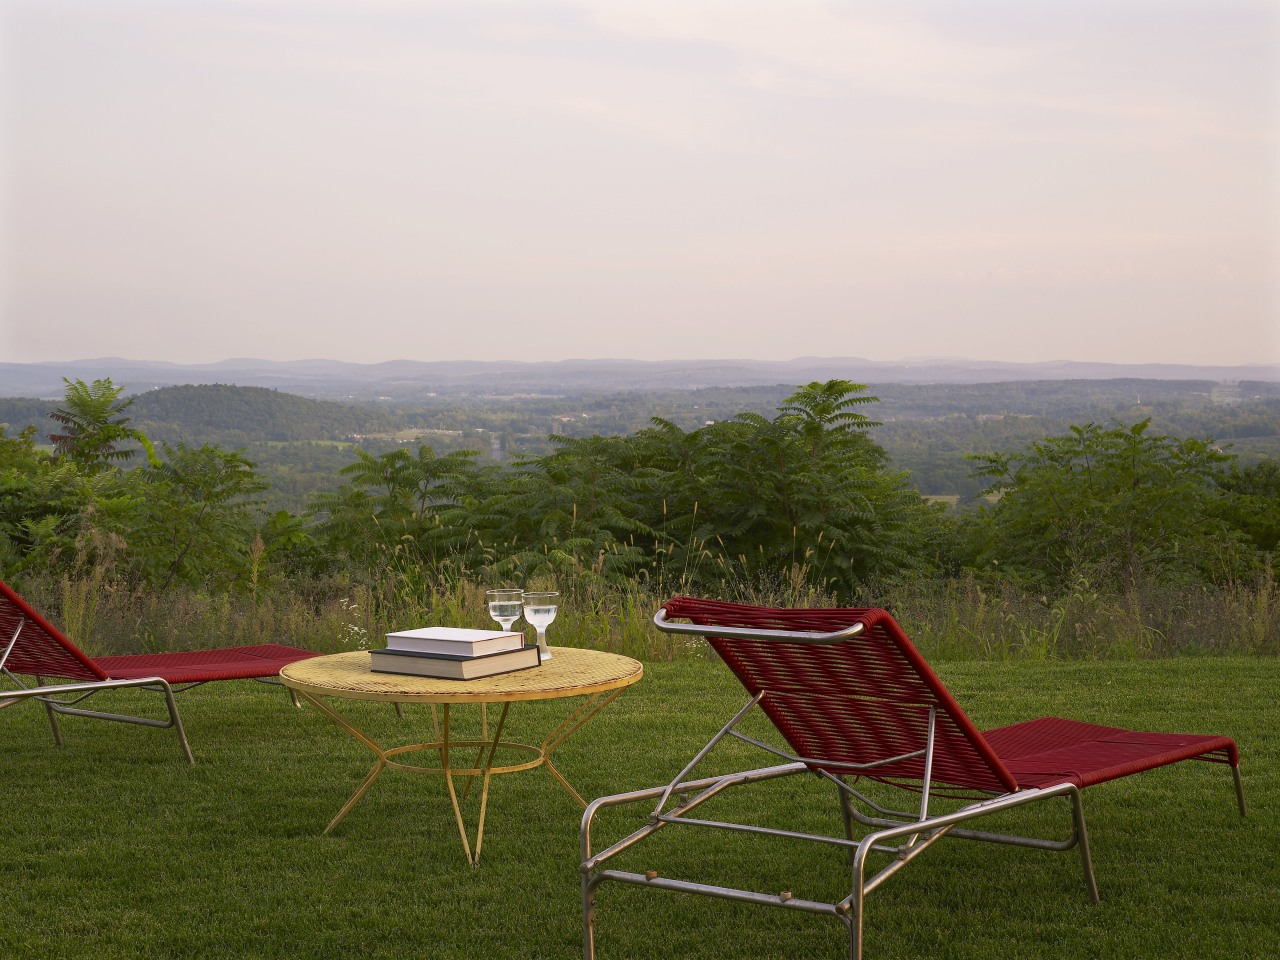 Sitting high on a natural plateau, this house chair, field, furniture, grass, grassland, house, landscape, leisure, meadow, outdoor furniture, plain, plant, rural area, sky, sunlounger, table, tree, brown, white